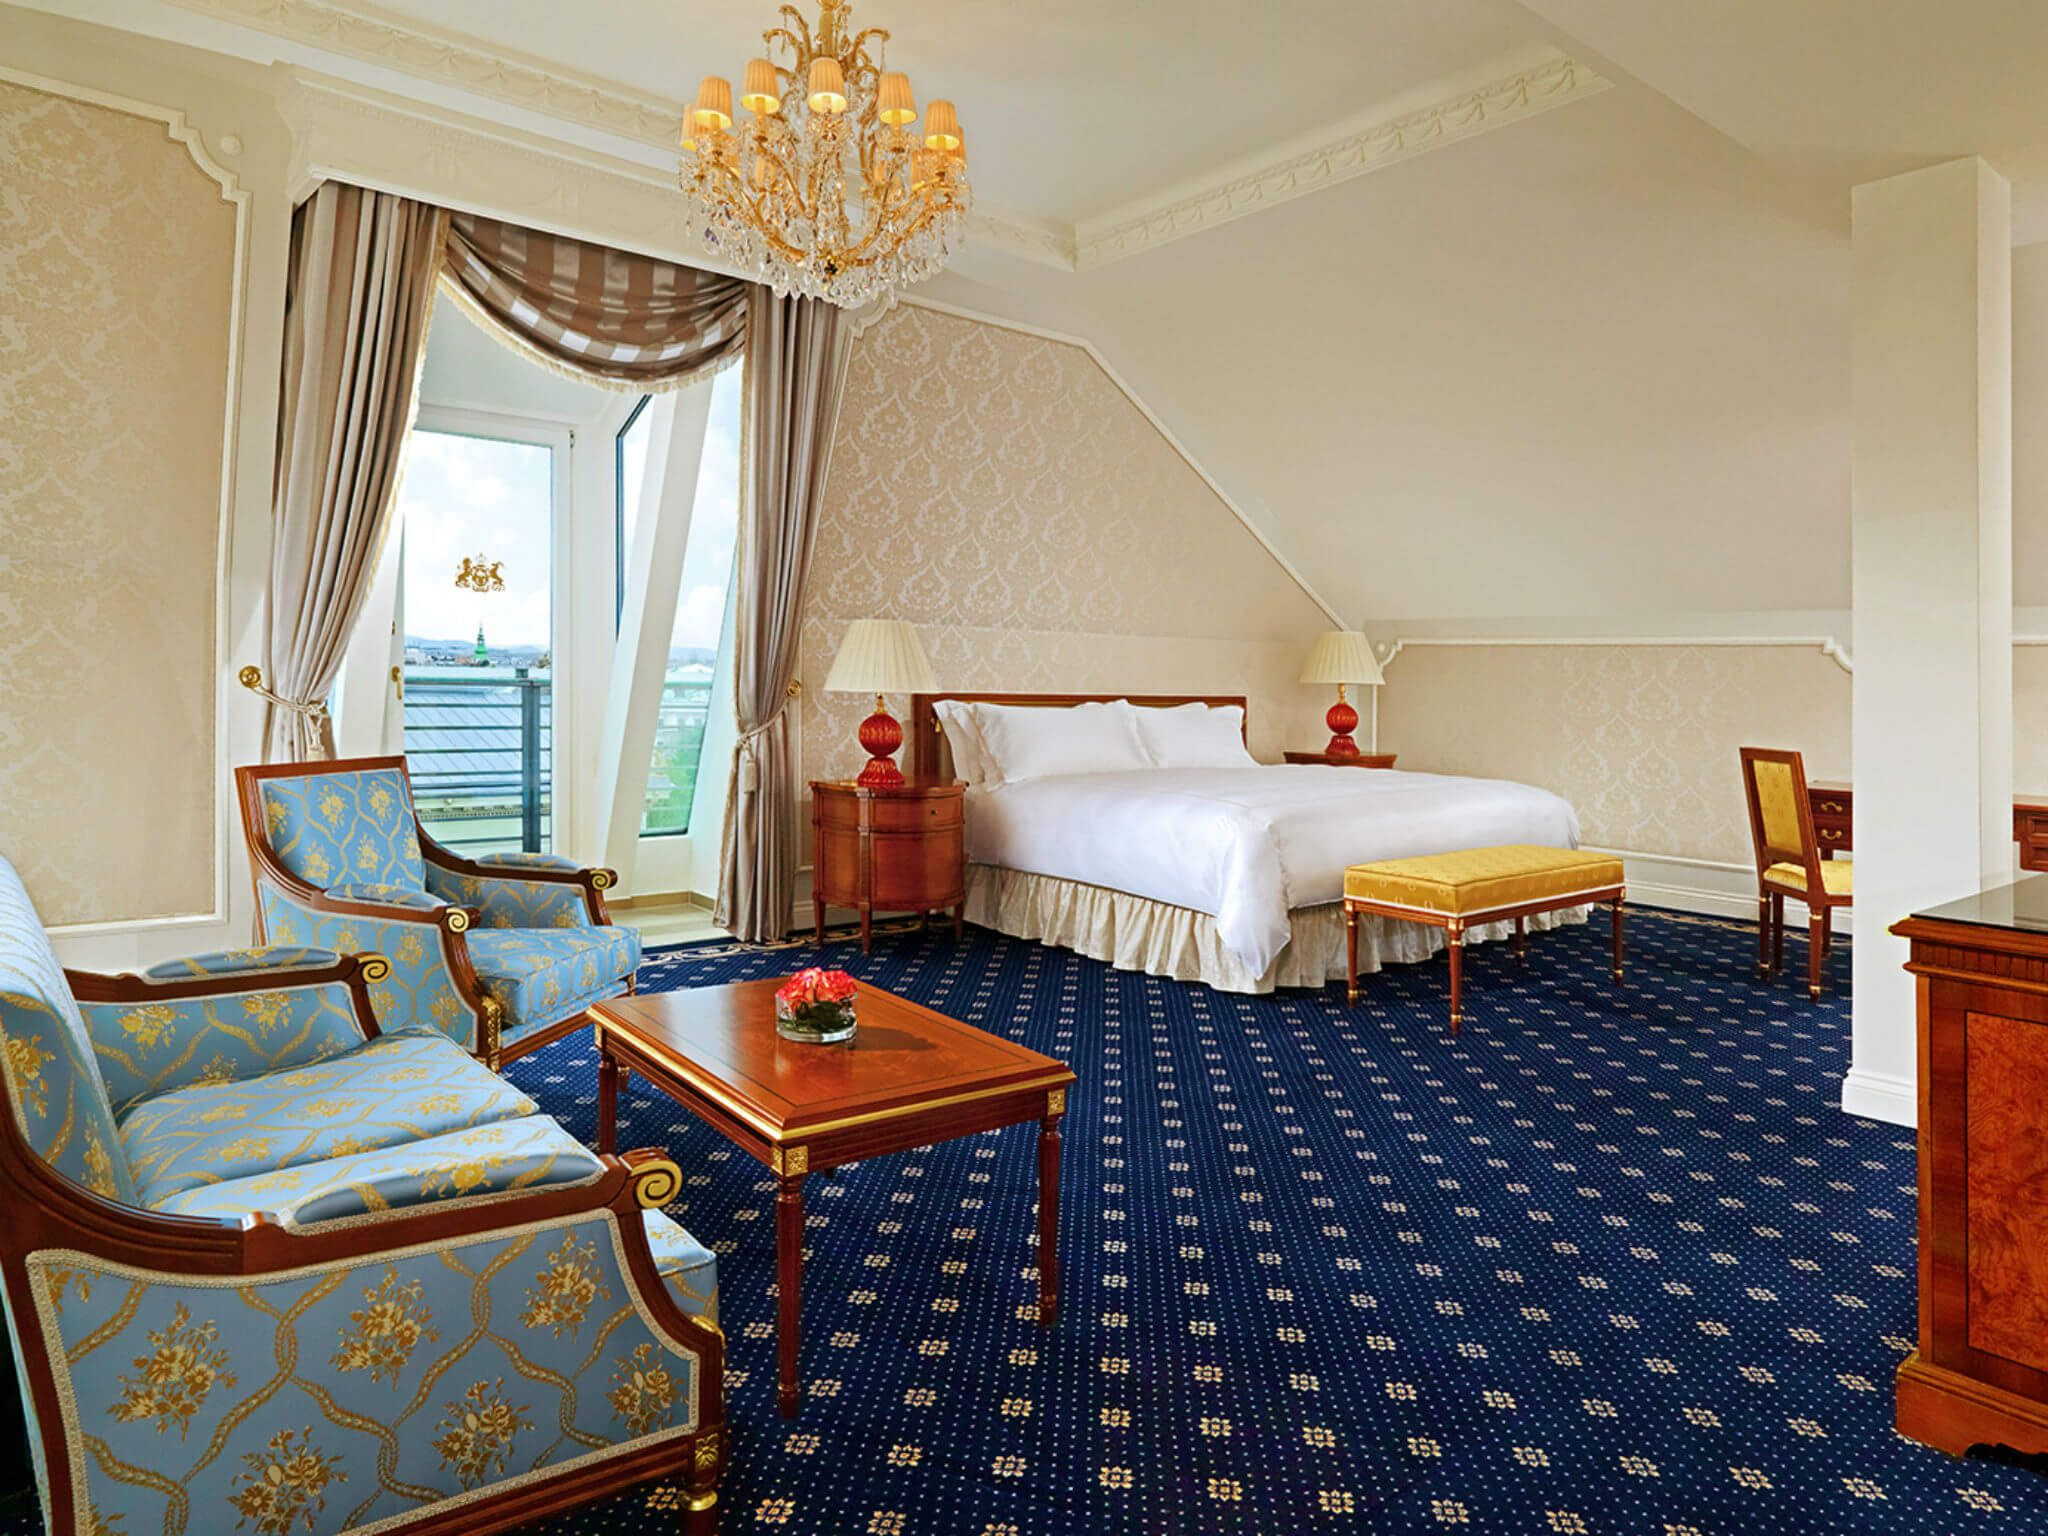 Executive Junior Suite in Wien Hotel Imperial